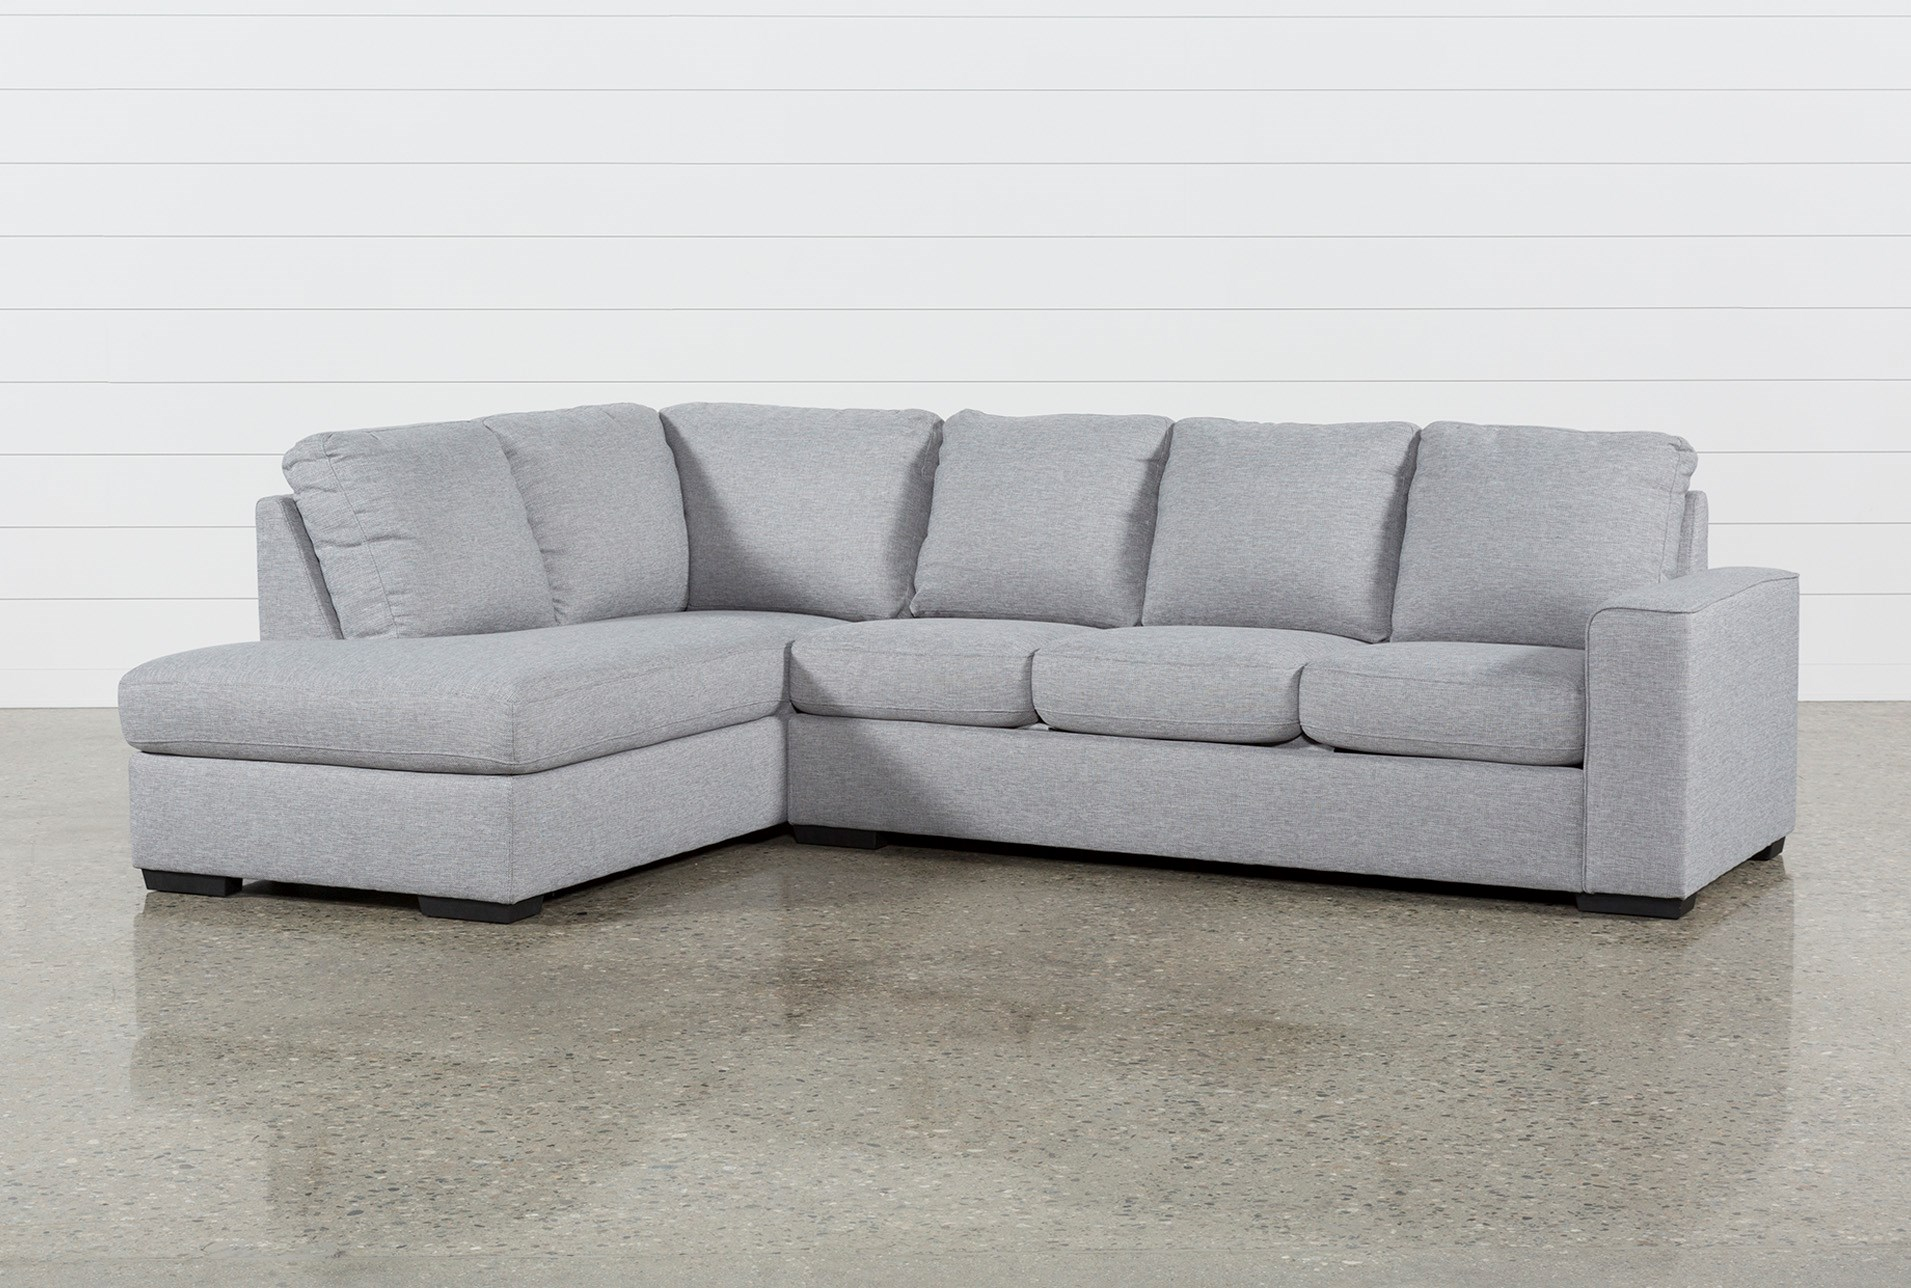 Lucy Grey 2 Piece Sectional W Laf Chaise Qty 1 Has Been Successfully Added To Your Cart